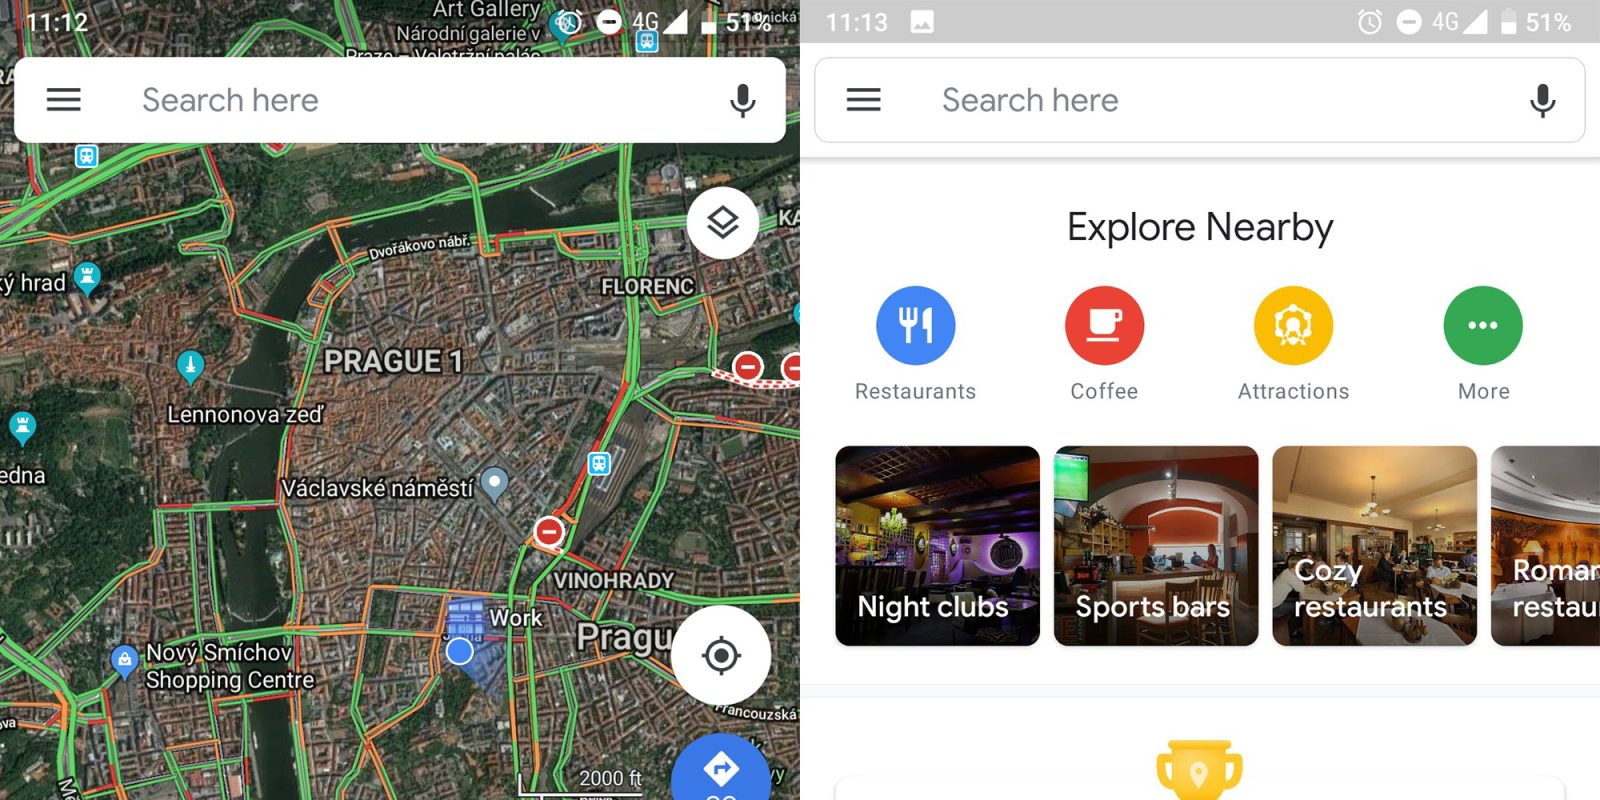 Google Maps testing new Material Theme design, rolling out now to some users [Gallery]